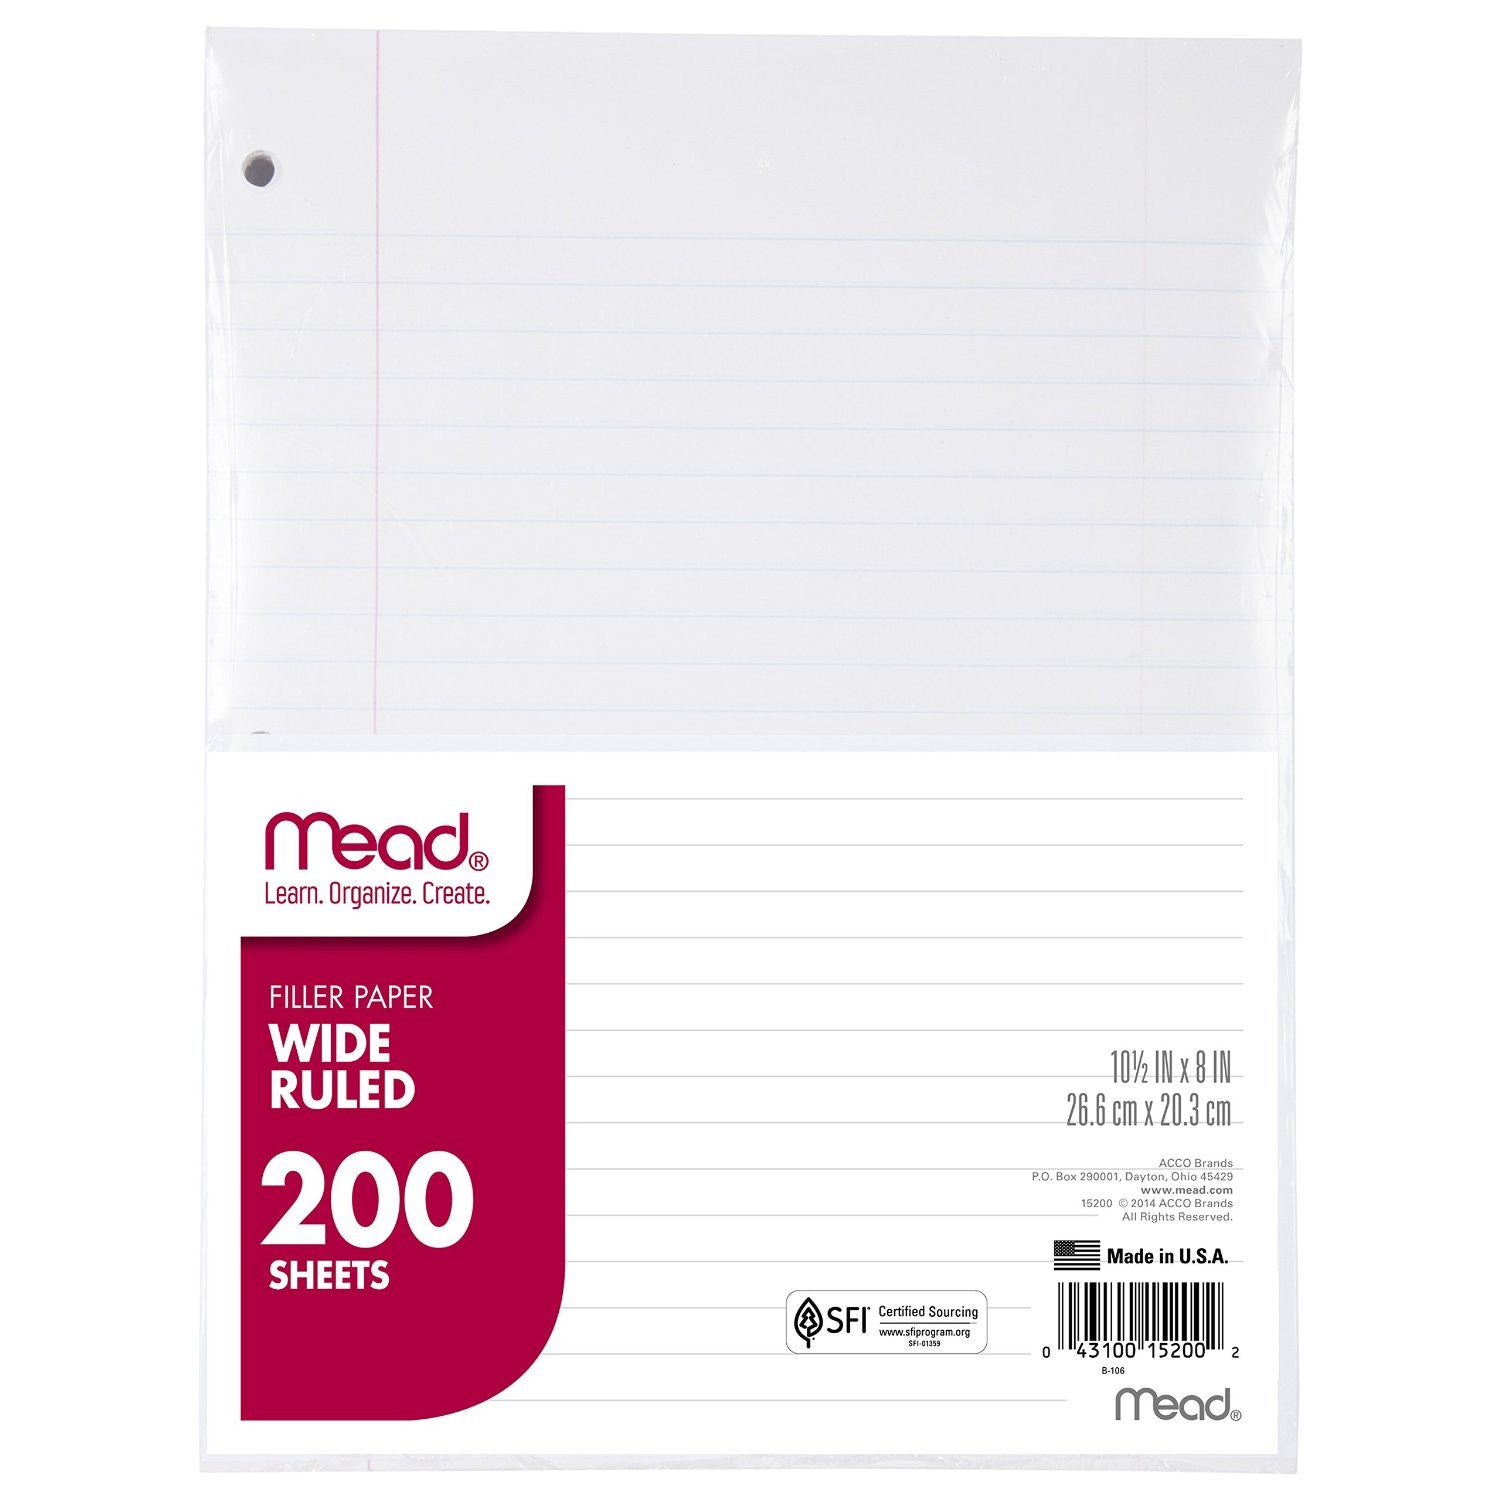 Mead Loose Leaf Lined Paper 200 Sheets